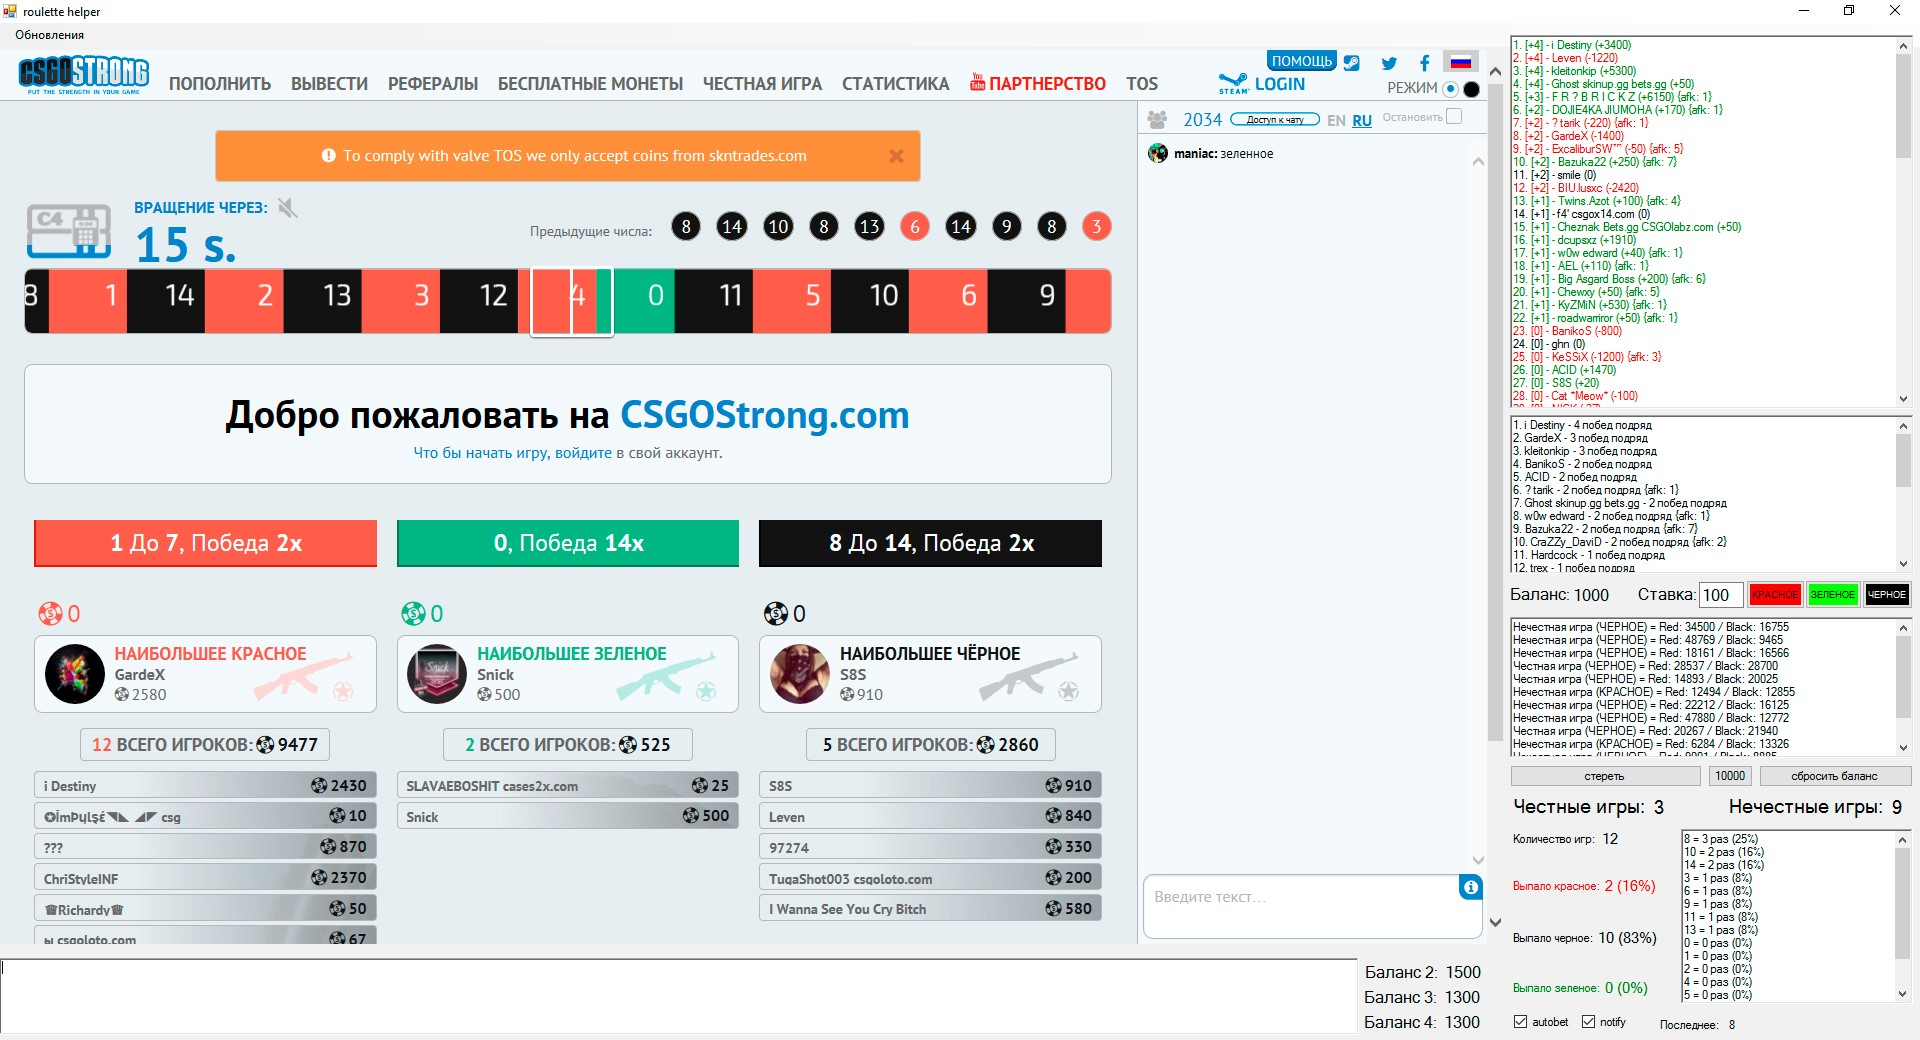 buy csgostrong com roulette helper bot and download